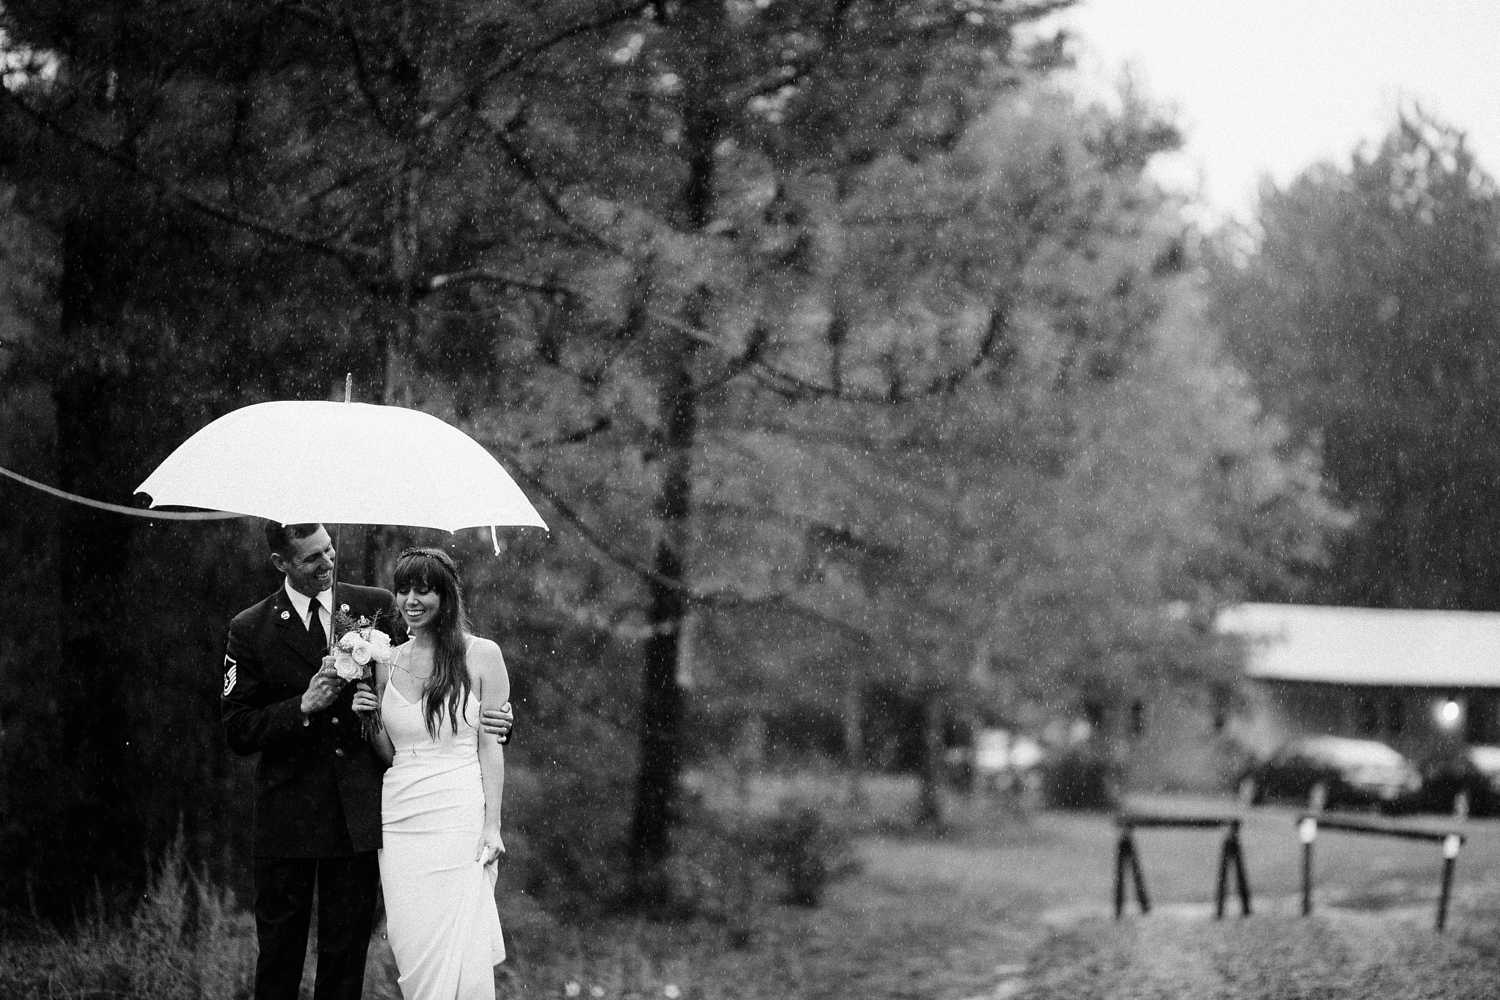 rainy-wedding-pictures-063